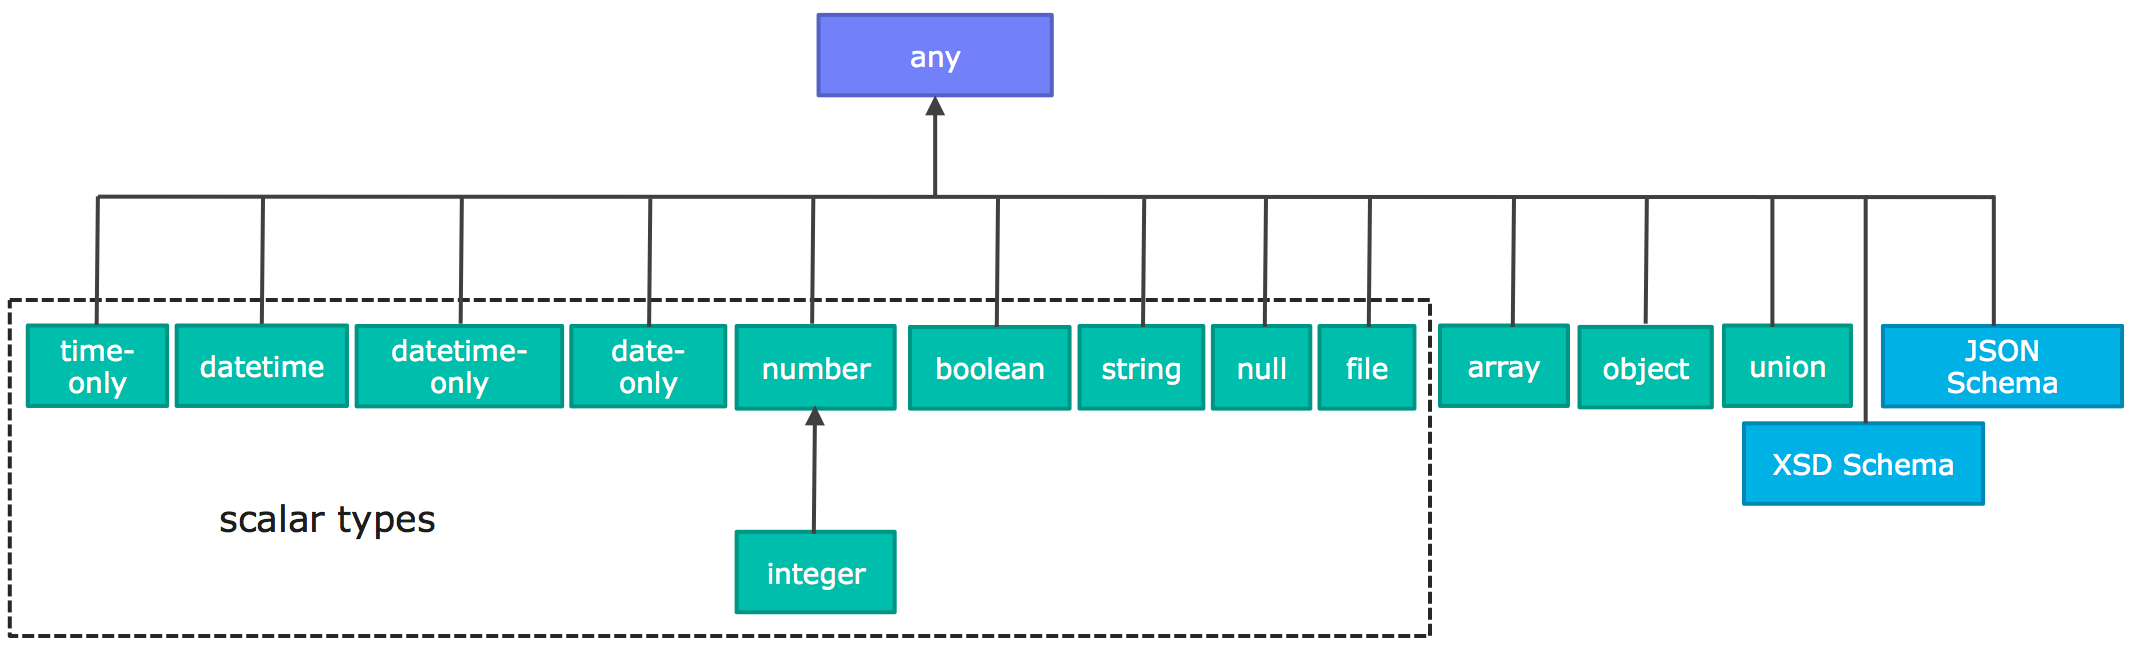 Data types in Raml 1.0 (source: github.com/raml-org/raml-spec/)